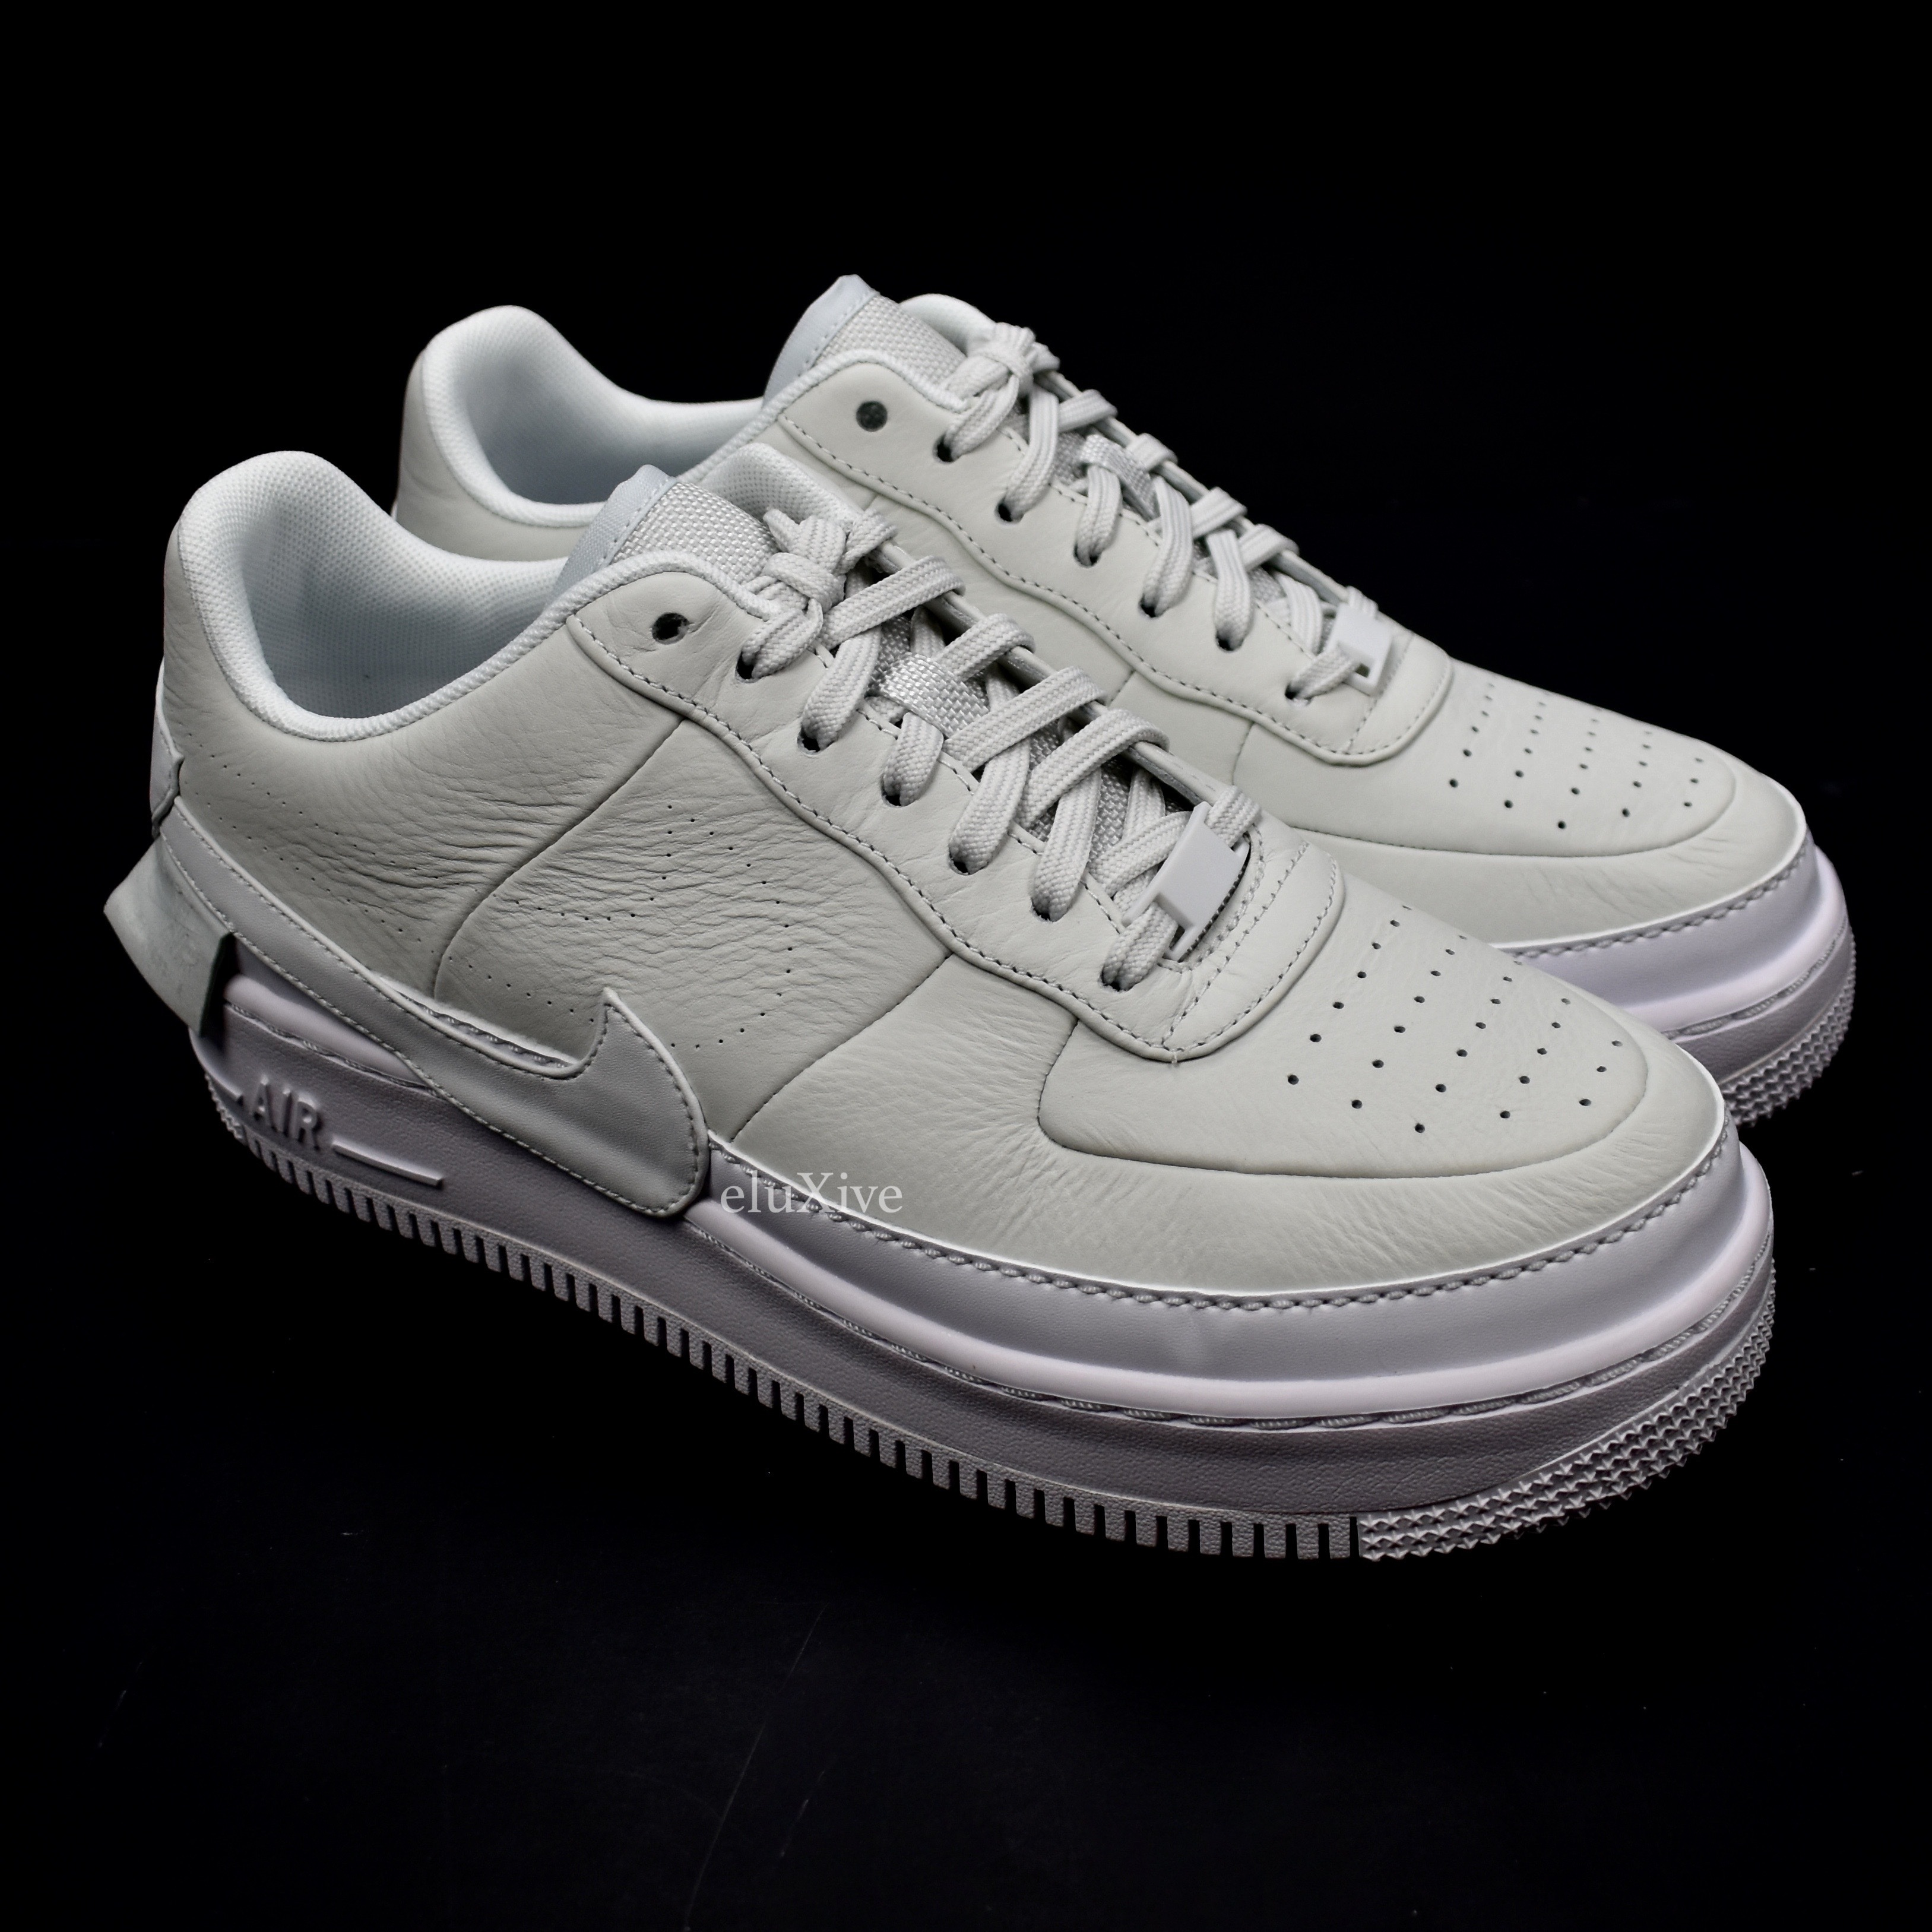 Nike Air Force 1 Jester XX Off White DS Size 9 - Low-Top Sneakers for Sale  - Grailed 91d7a606b